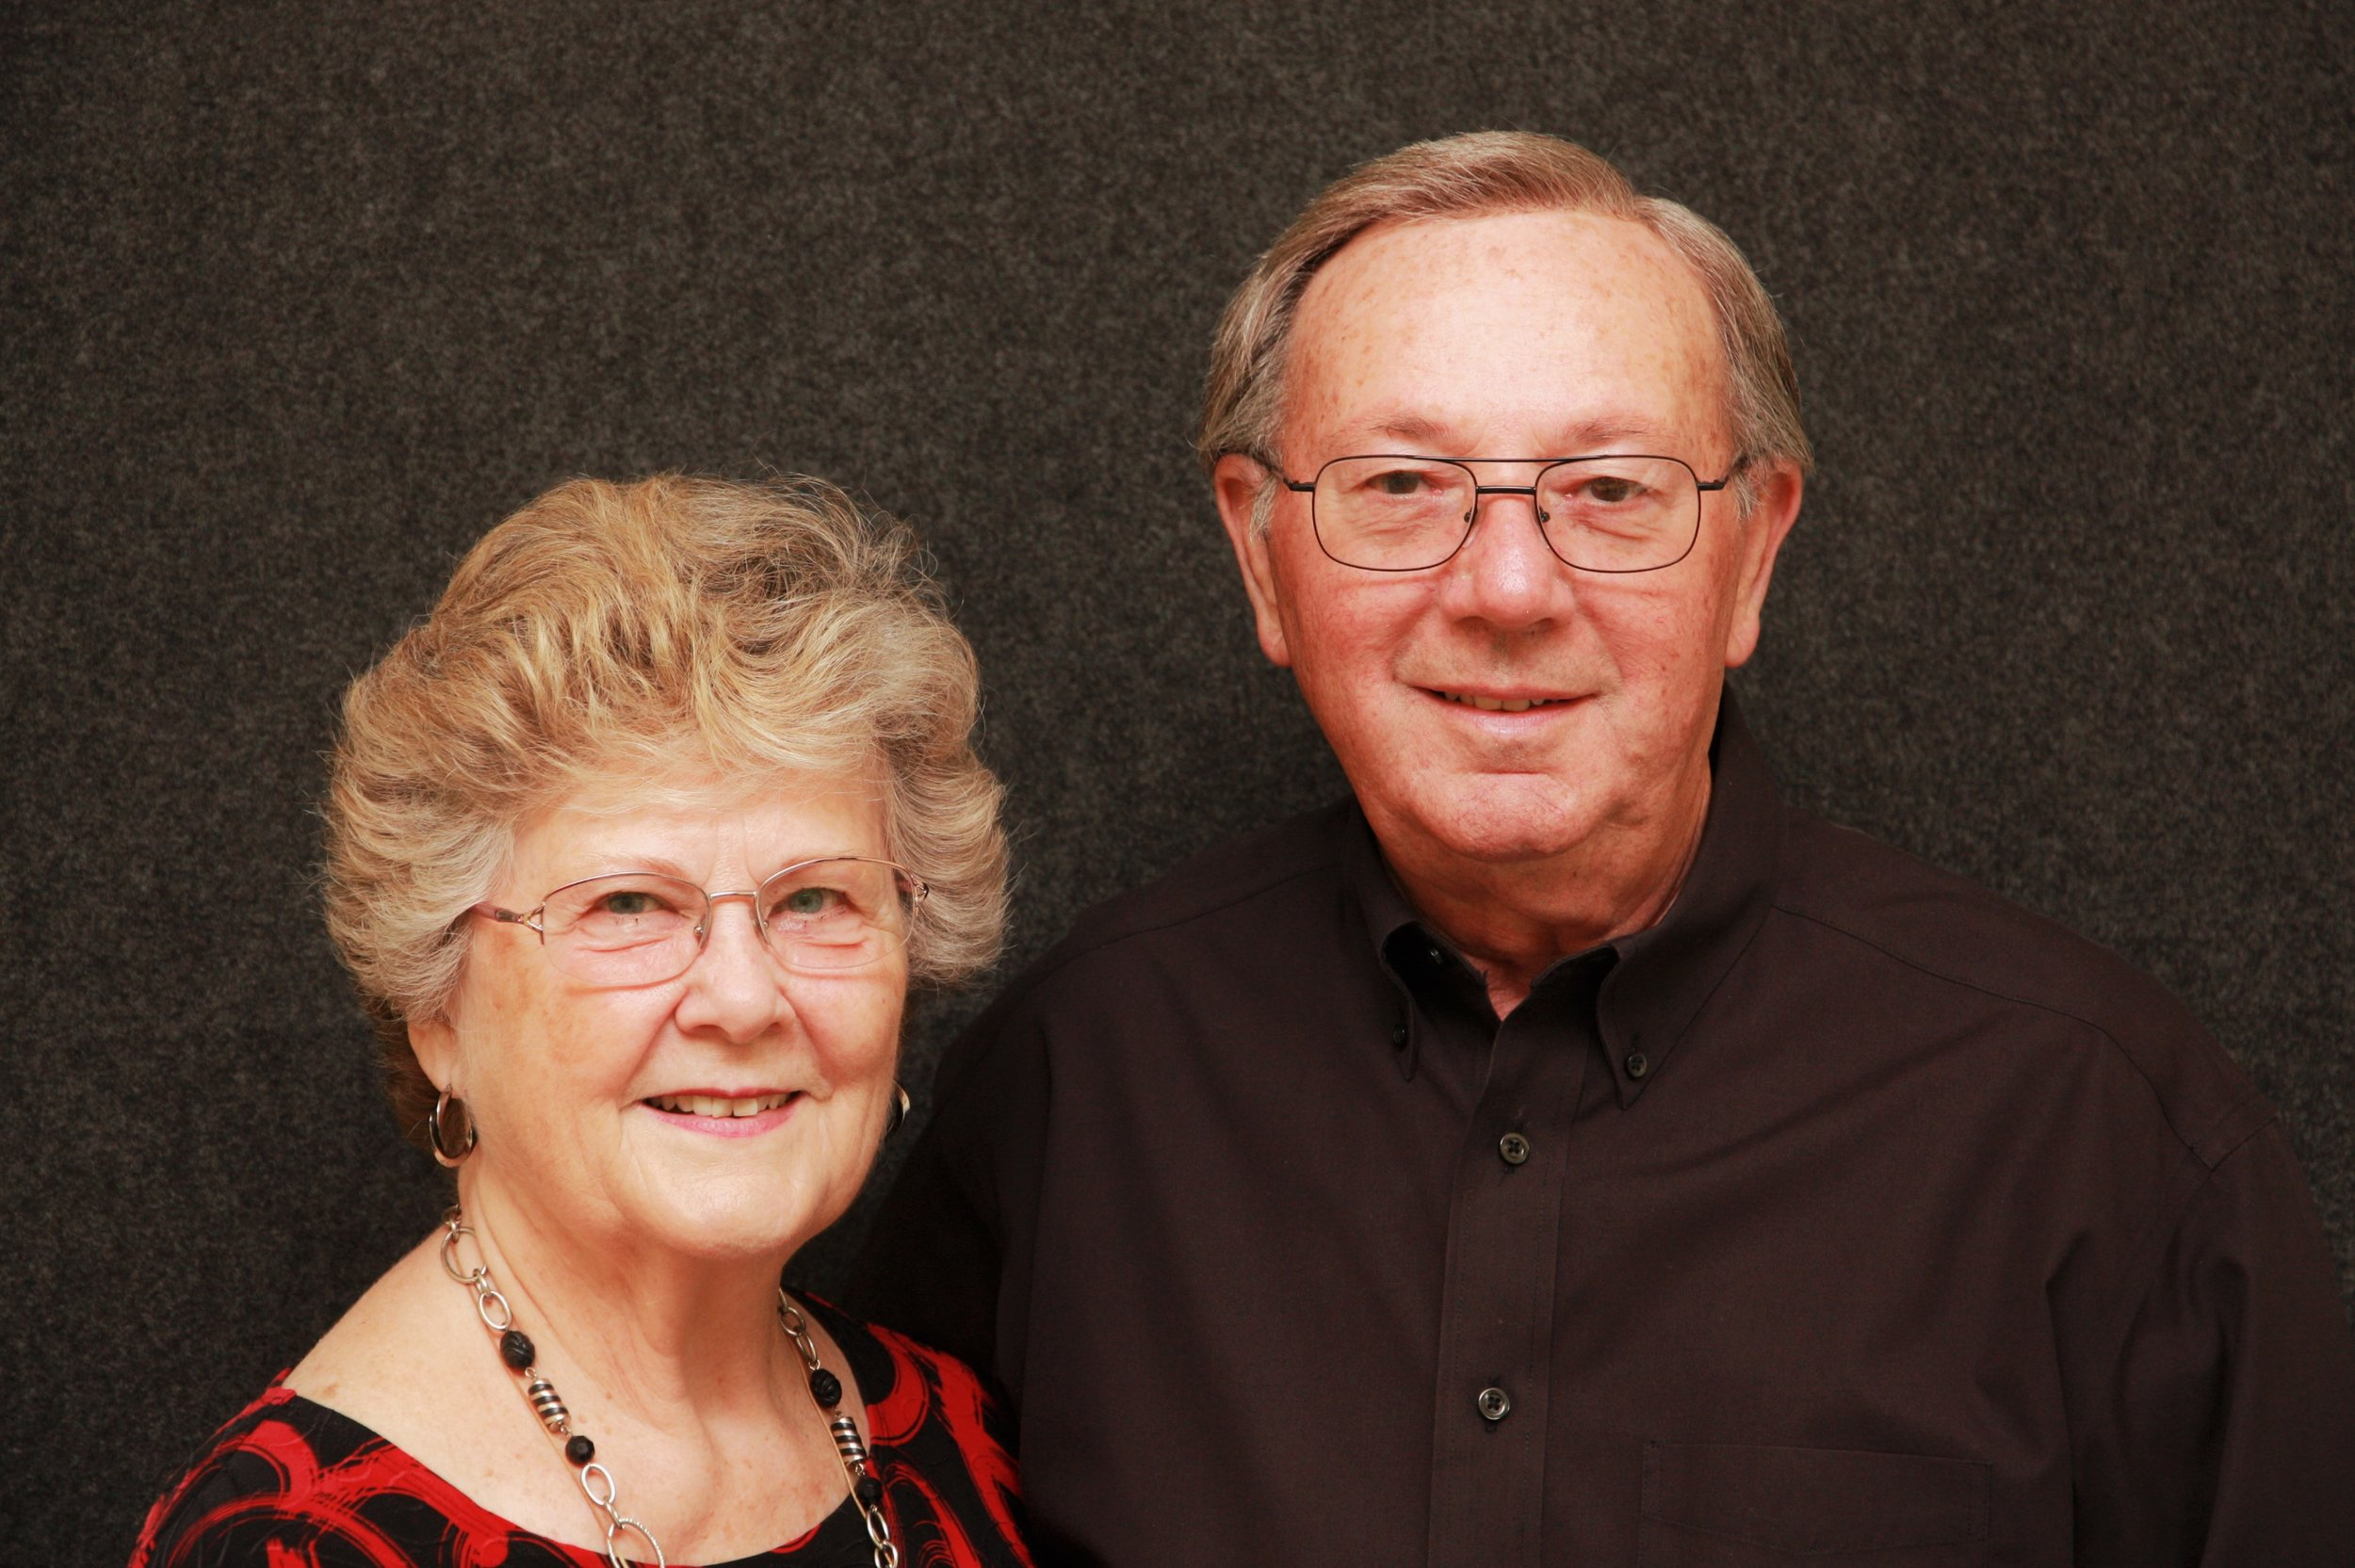 Dennis & Betty Webb   Treasurer/Event Organization   We're blessed to have Dennis and Betty Webb serve in a variety of leadership roles at River Life Church. Dennis leads our Hosting, Ushering and Greeting ministry and serves as the church treasure.  Betty serves as our event coordinator, Wednesday night kids ministry volunteer and helps in the church office on a weekly basis in a variety of roles. Betty leads our efforts in feeding the Dunnellon sports teams pre-game meals and she's active in our women's ministry.